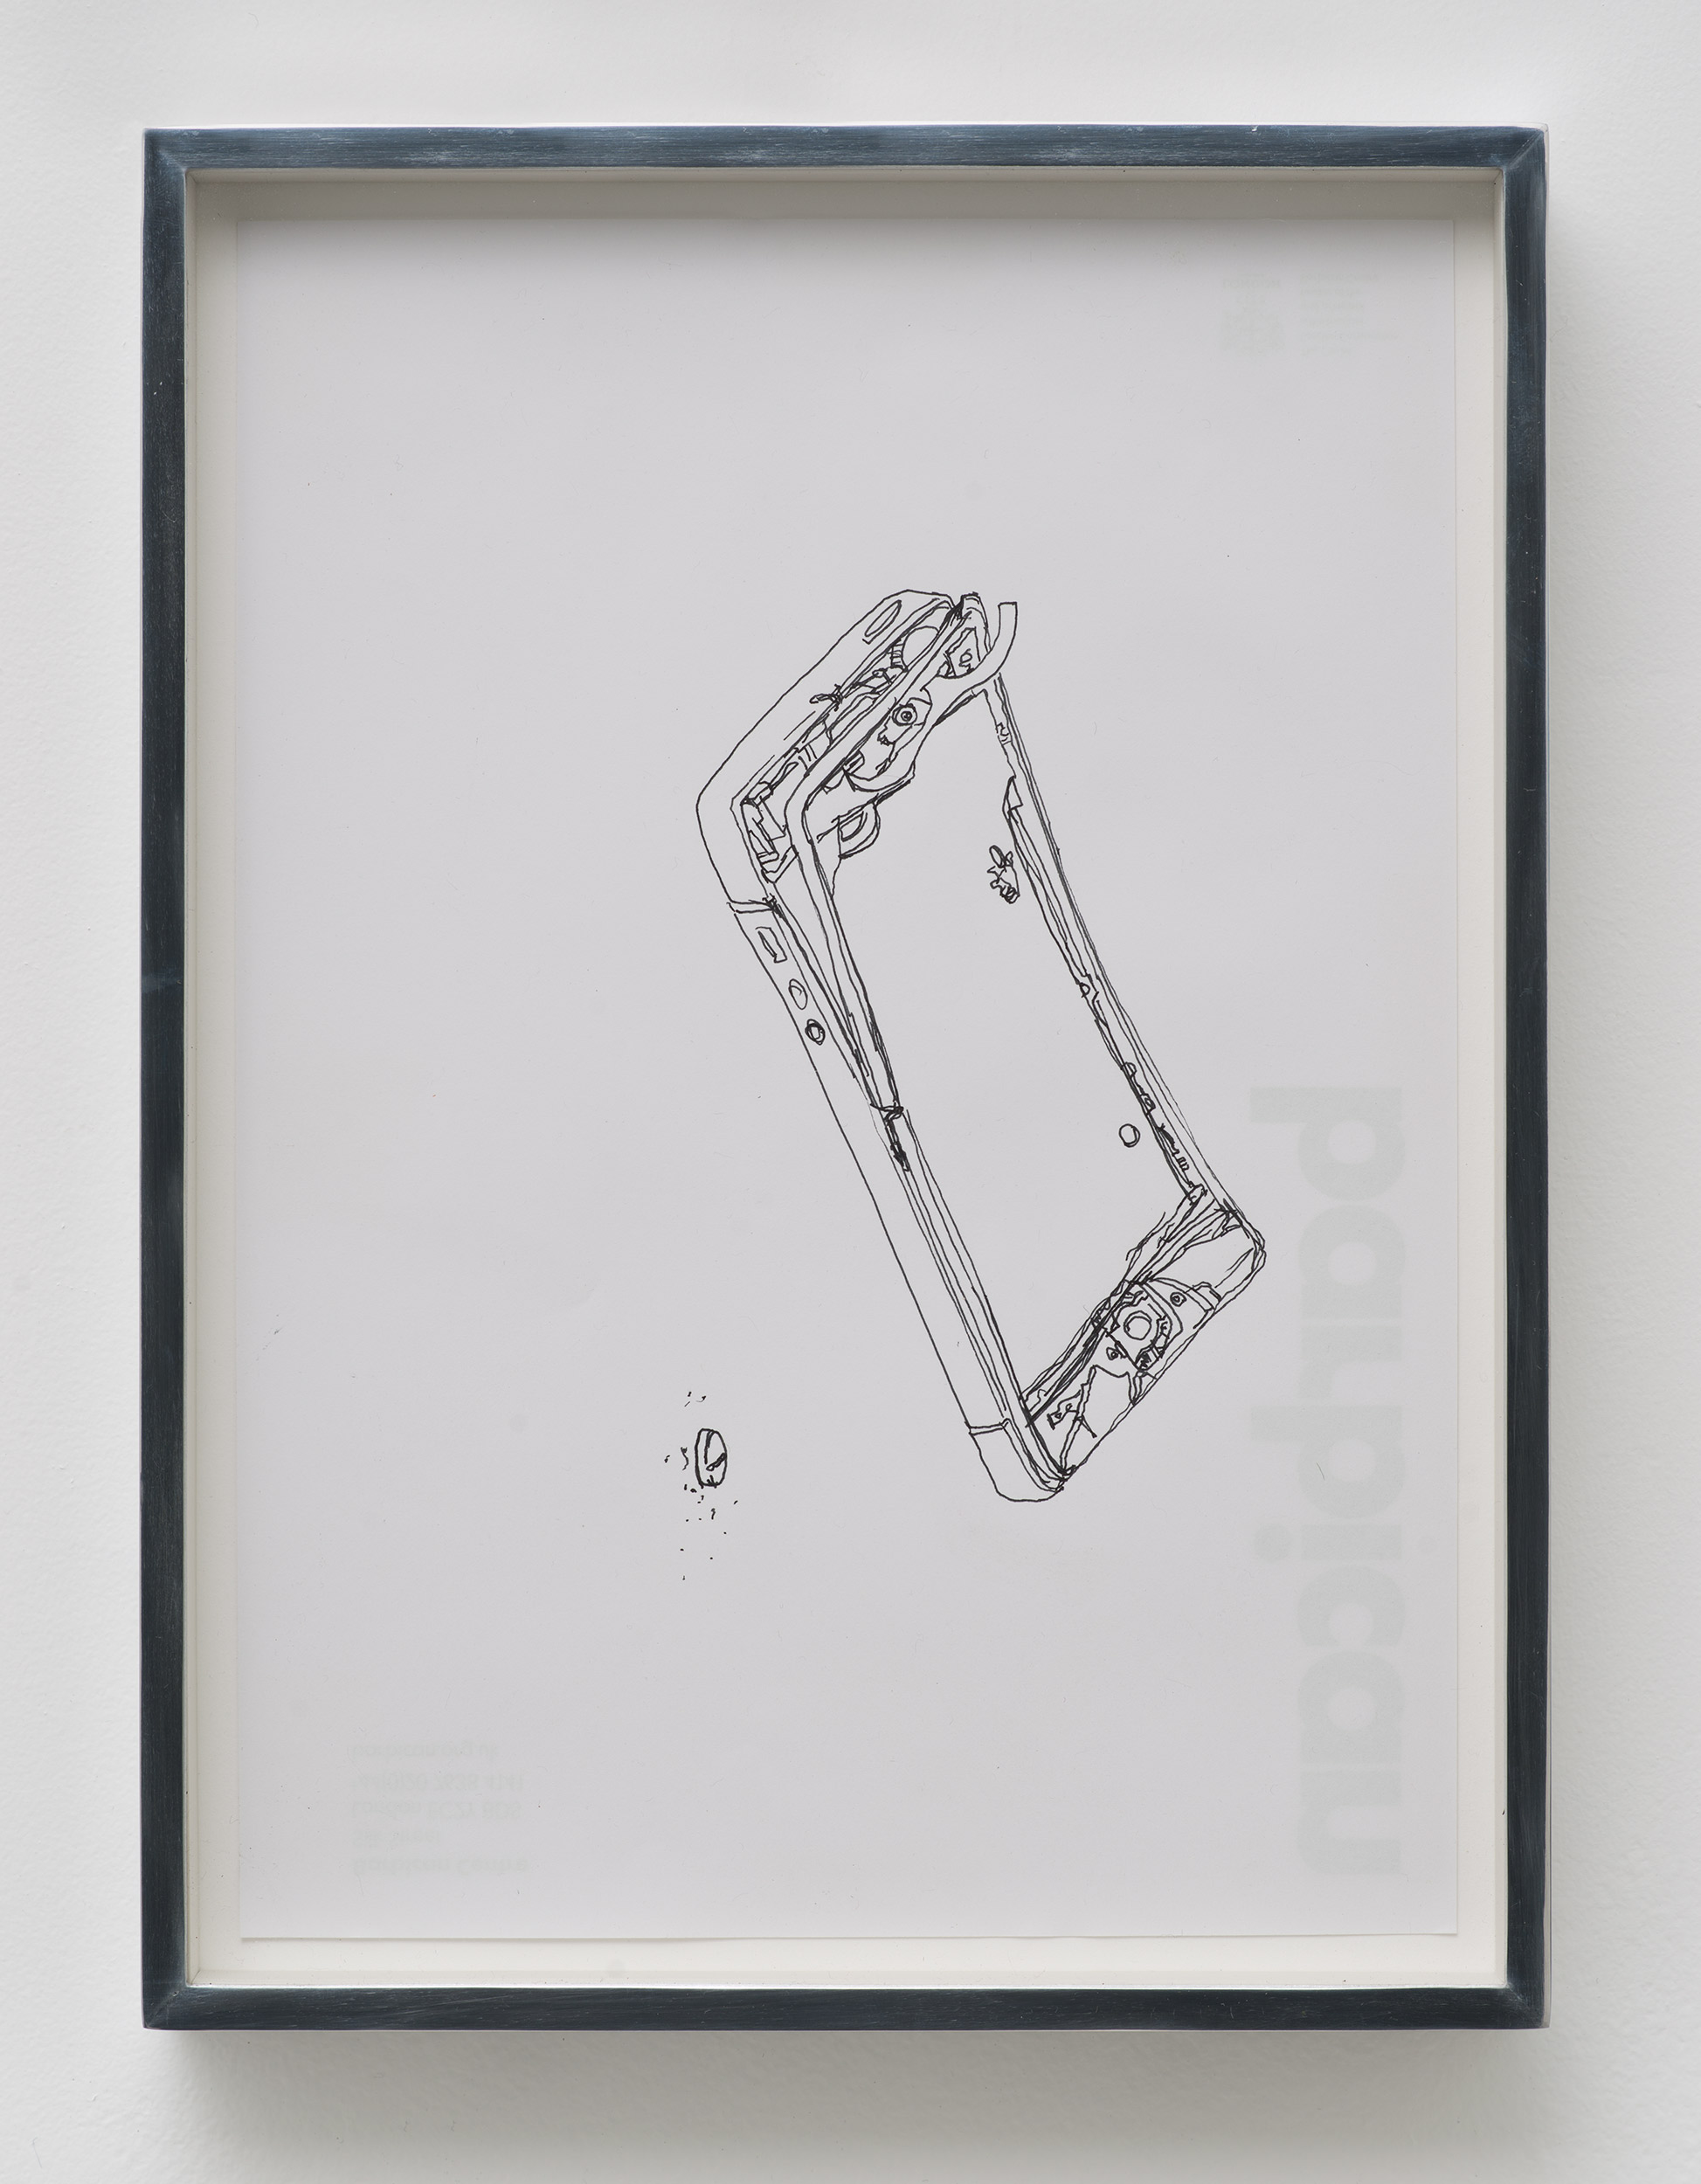 iPhone 5 A1429/Adderall, Amphetamine and Dextroamphetamine 10 mg, cor 132, Round, Multi-Segmented, Core Pharmaceuticals, Inc.: Barbican Centre, London, United Kingdom, October 10, 2014    2015   Ink on letterhead  12 7/8 x 9 1/2 inches   Drawings, 2014–